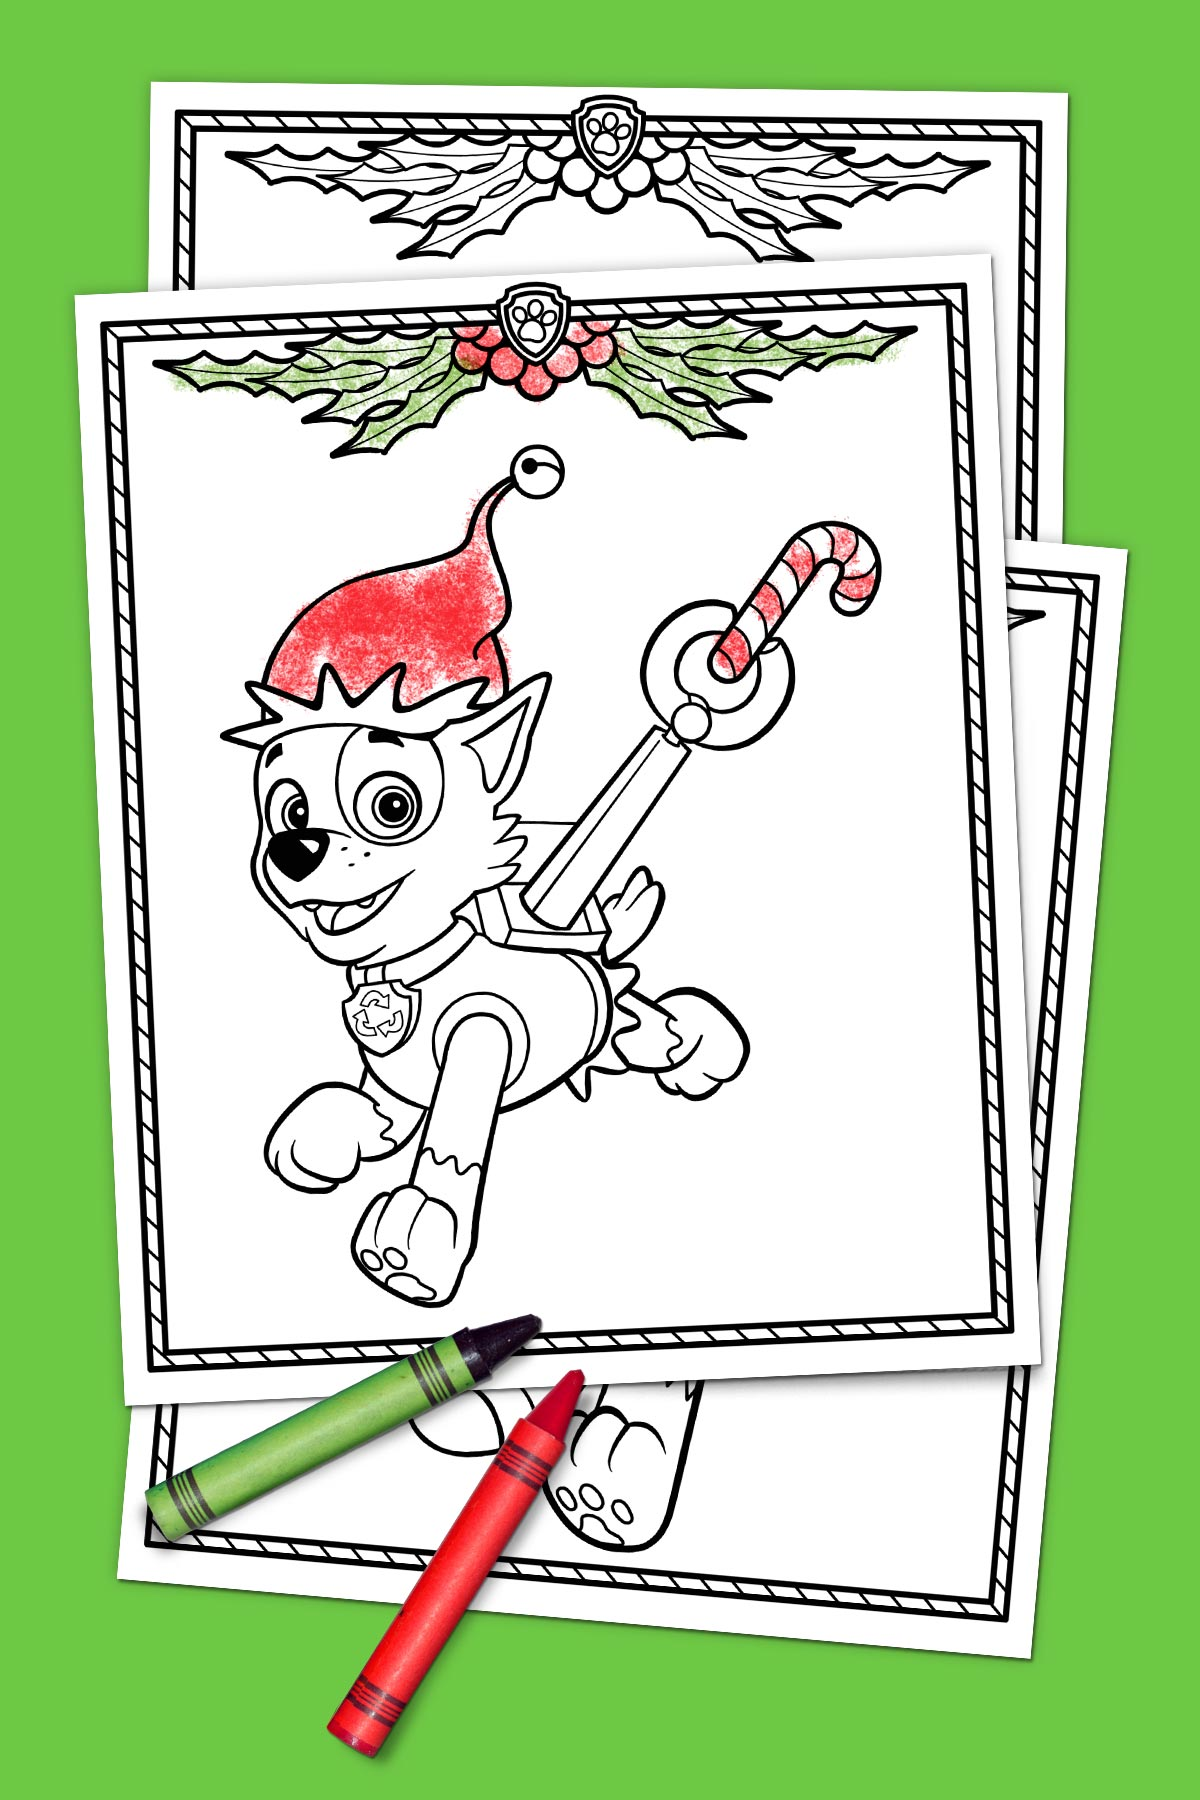 Paw patrol coloring pages christmas - Savesave To Pinterest Paw Patrol Holiday Coloring